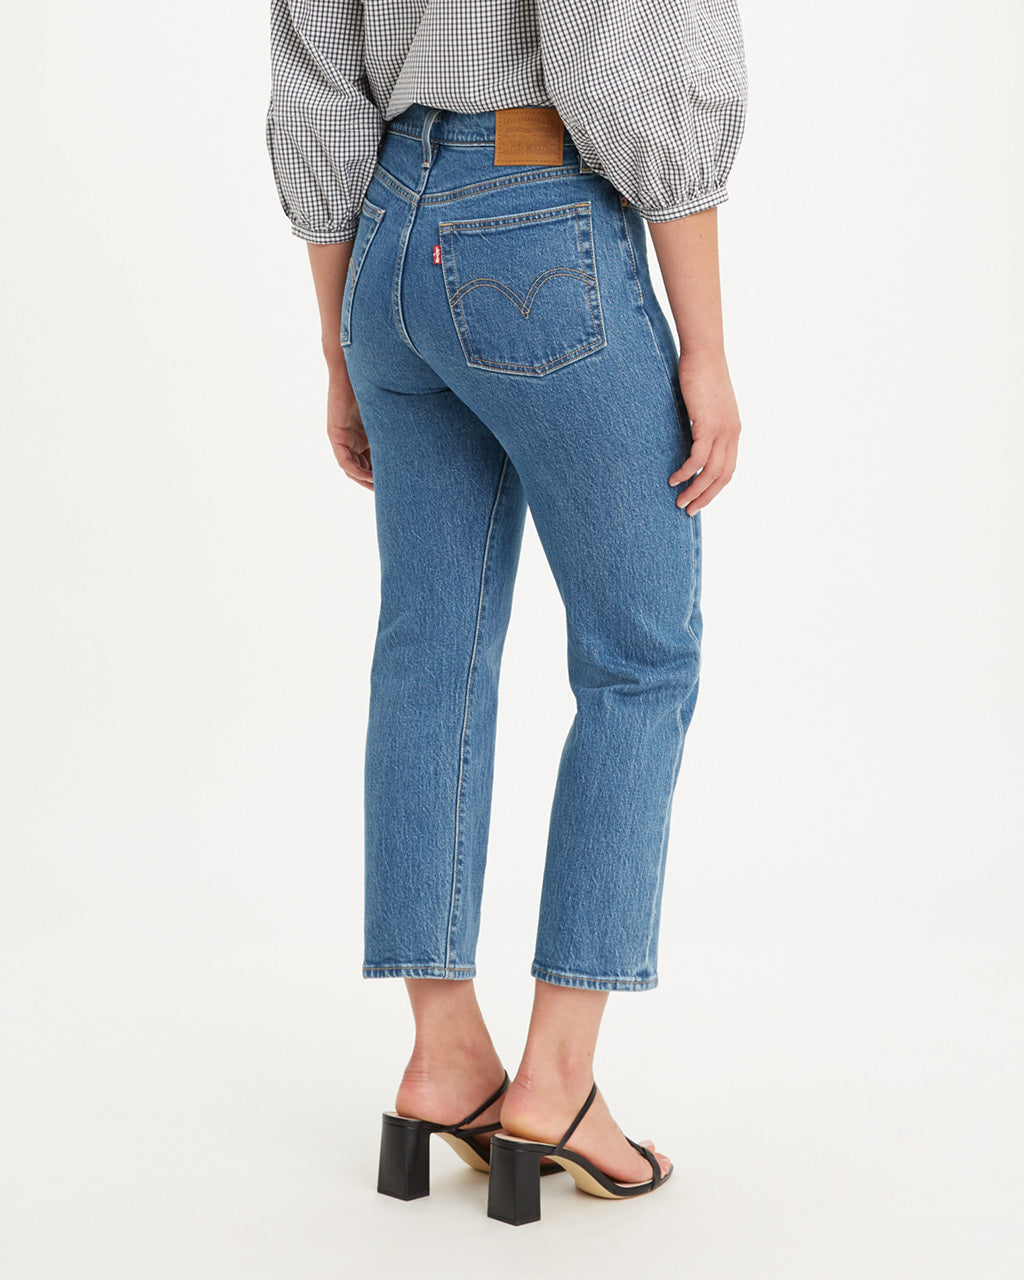 Back of straight-leg jeans with classic blue wash showing back pockets